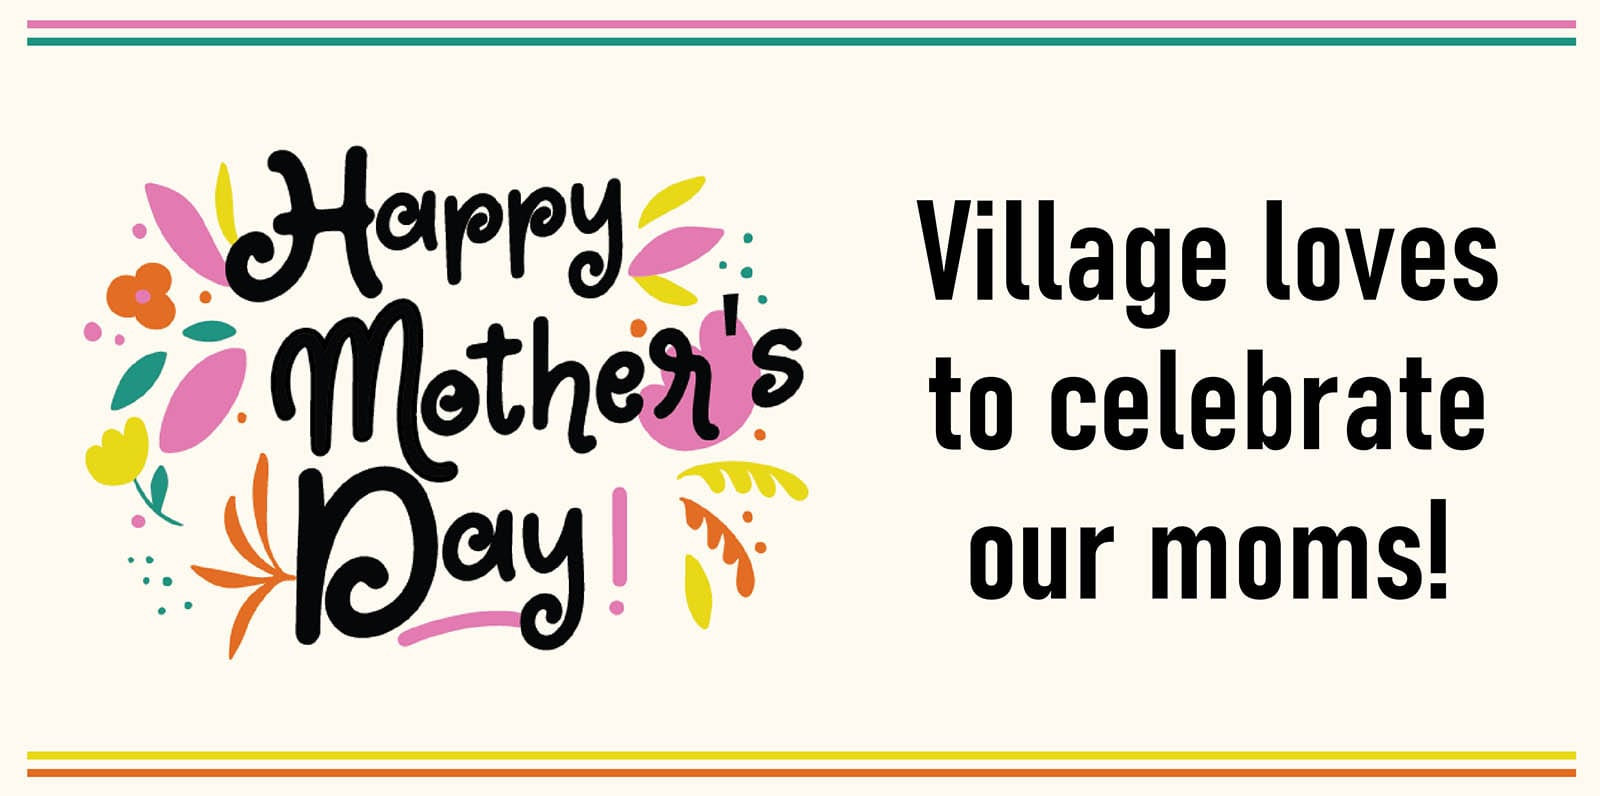 Happy Mother's Day from Village Super Market!